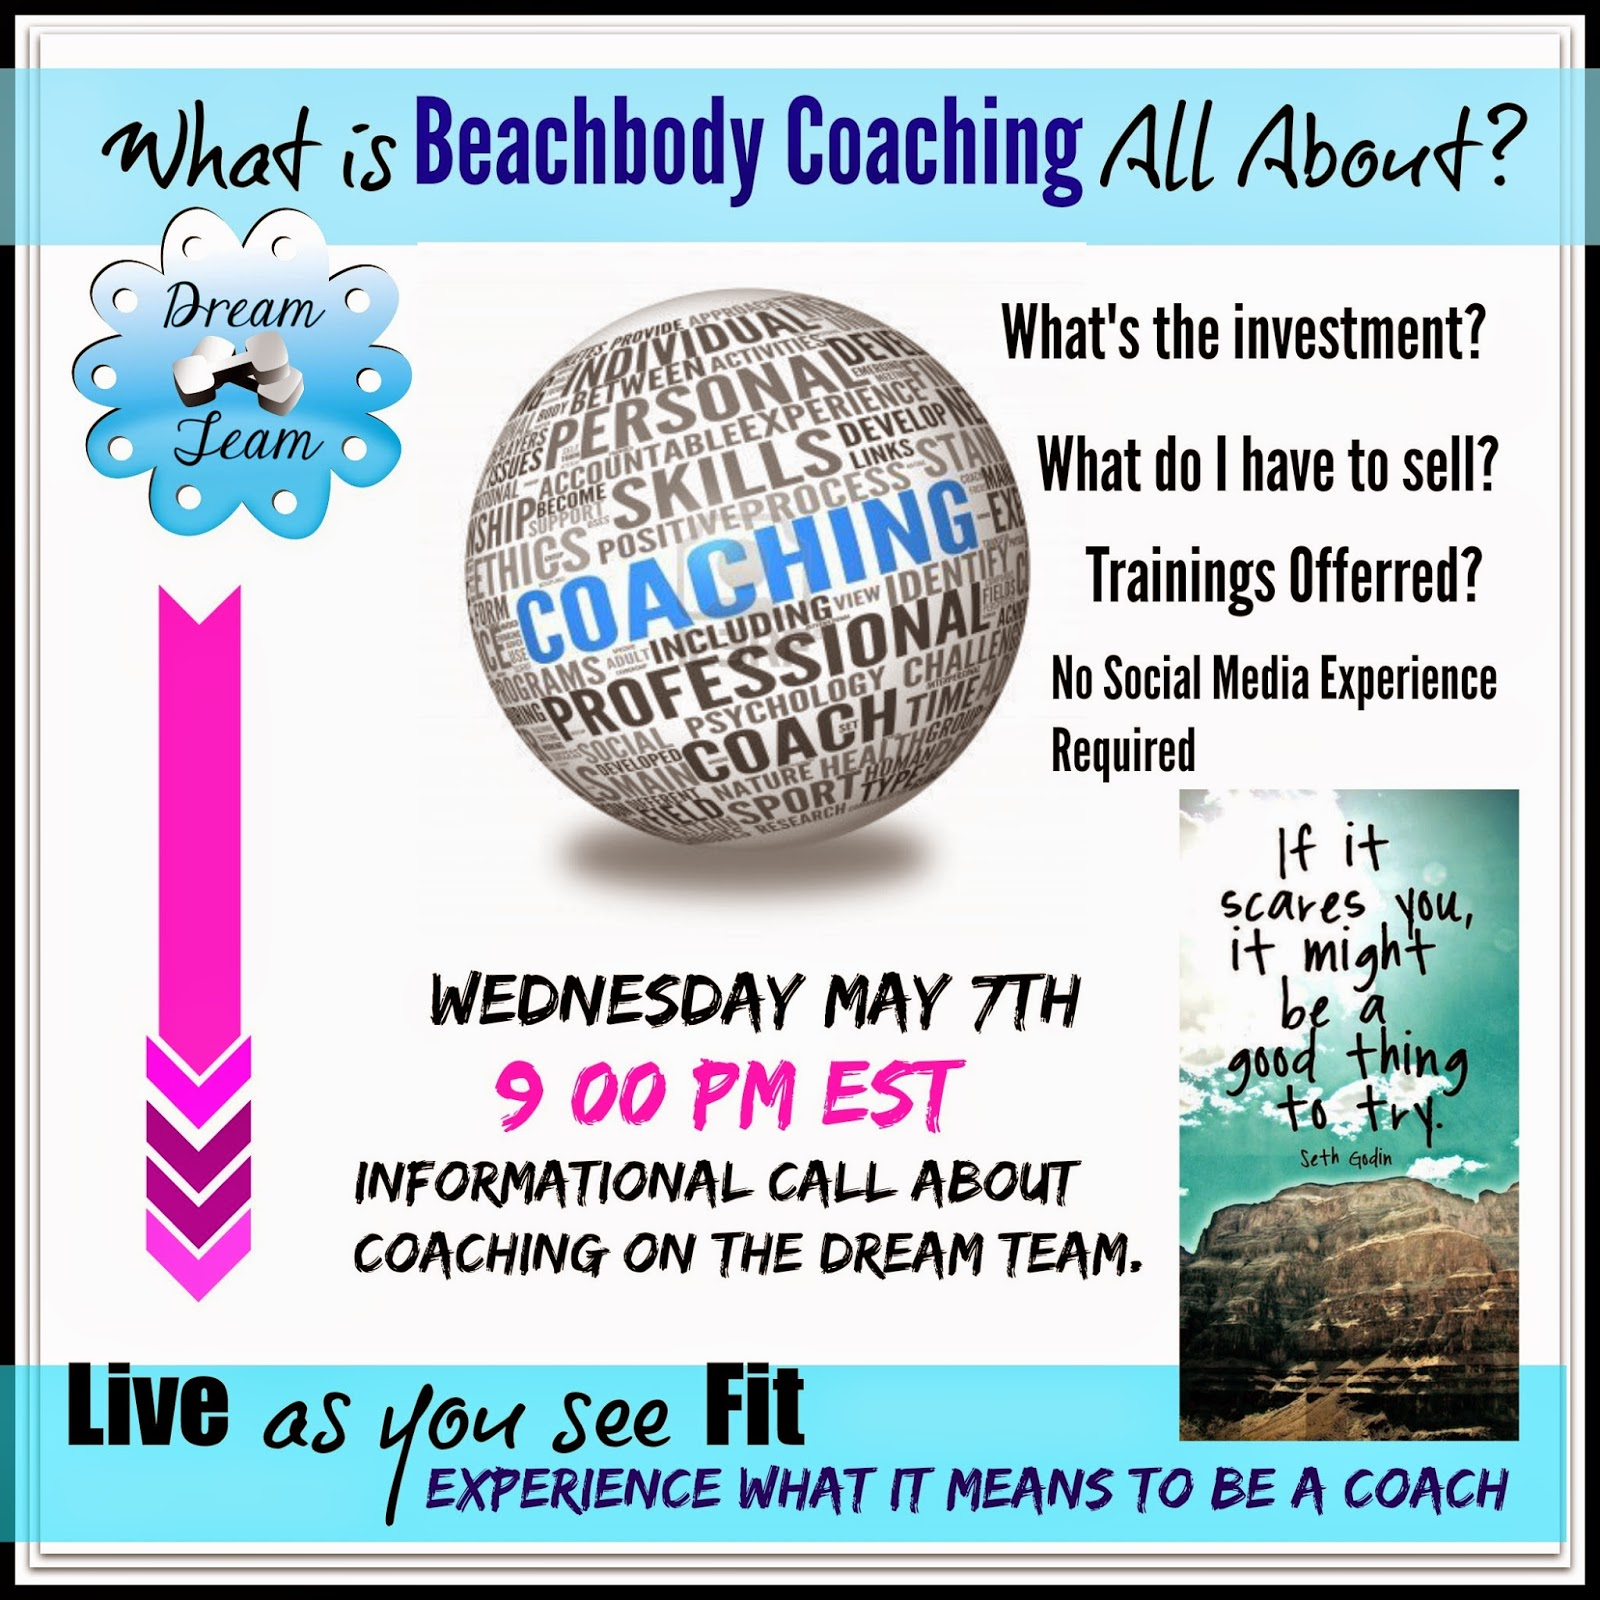 Top Beachbody Coach, Successful Coaching Team